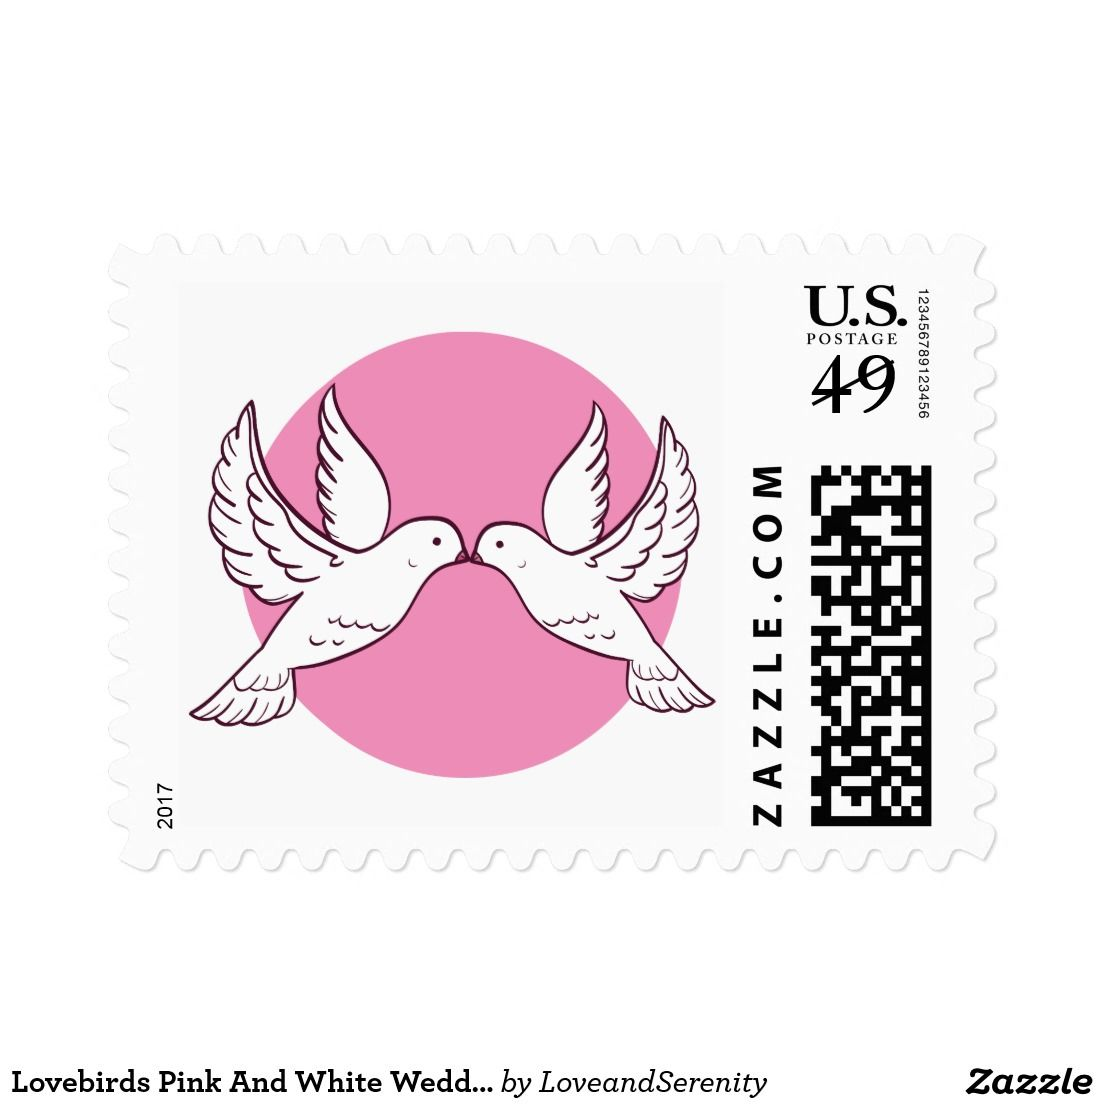 Lovebirds Pink And White Wedding Doves Postage | Pink Love ...